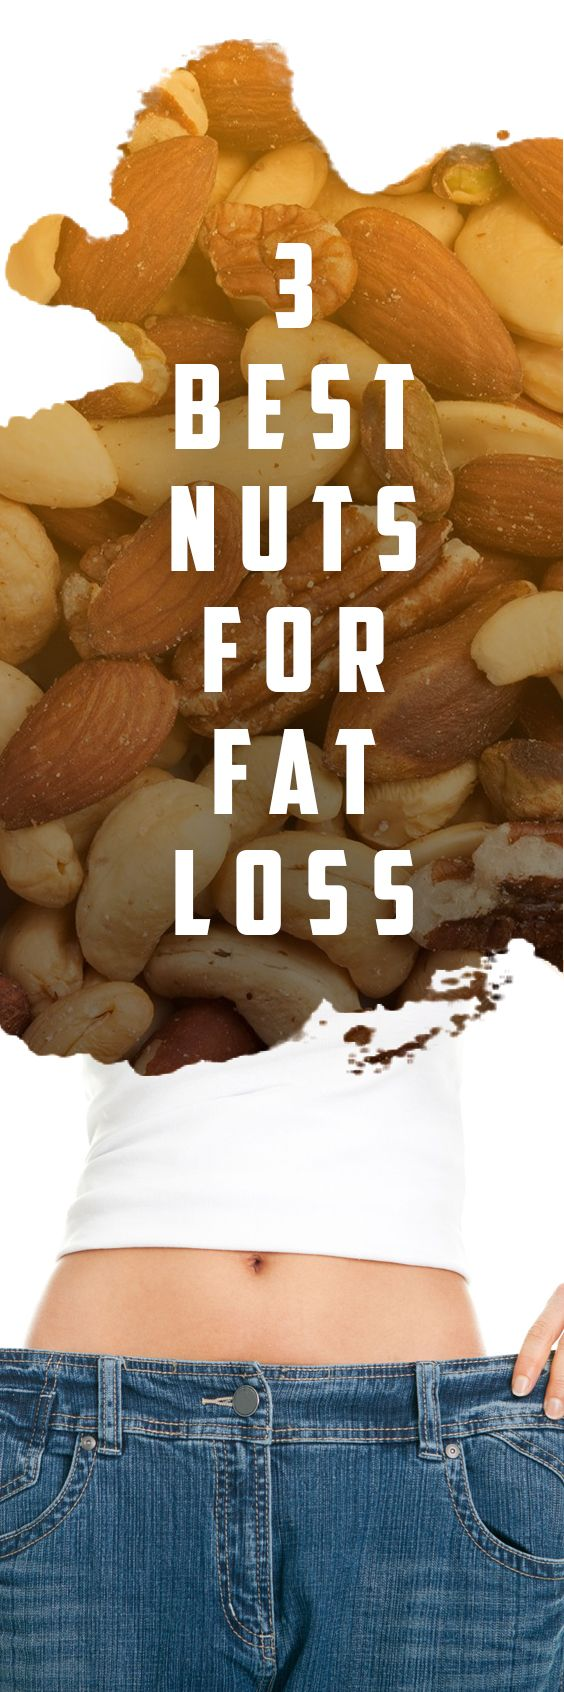 3 Best Nuts For Fat Loss